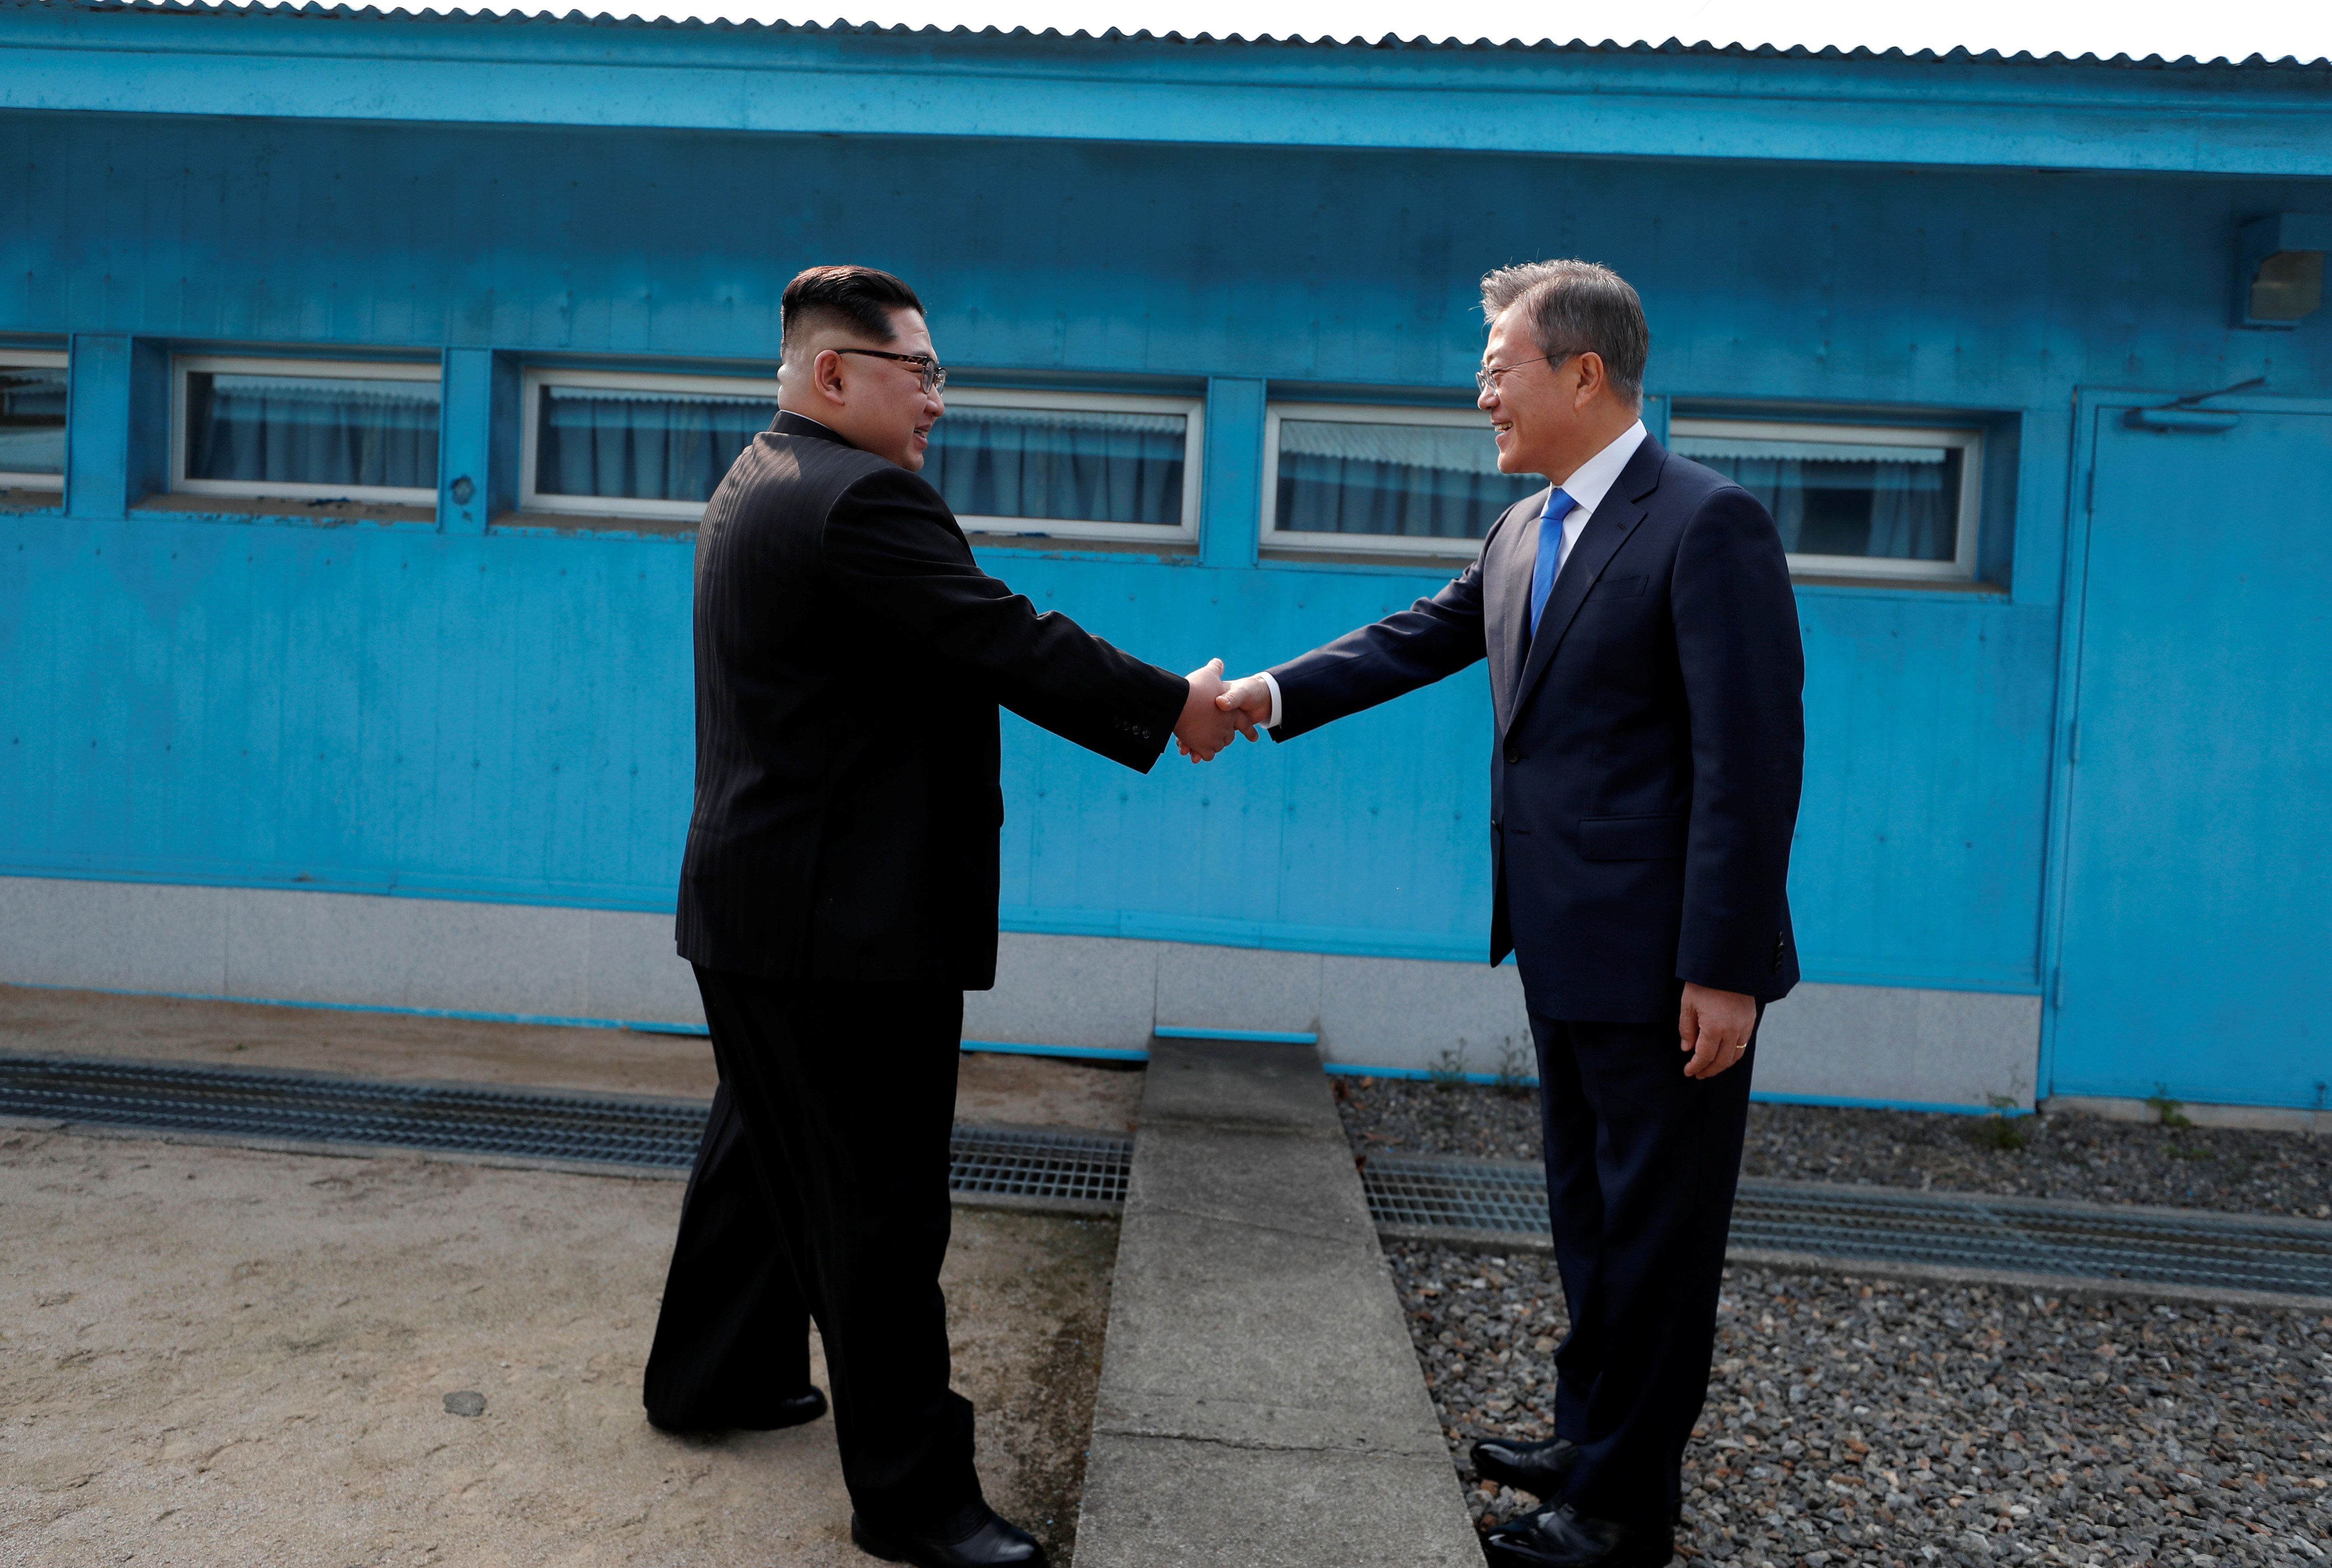 Leaders Of North And South Korea Agree To Work To Rid The Peninsula Of Nuclear